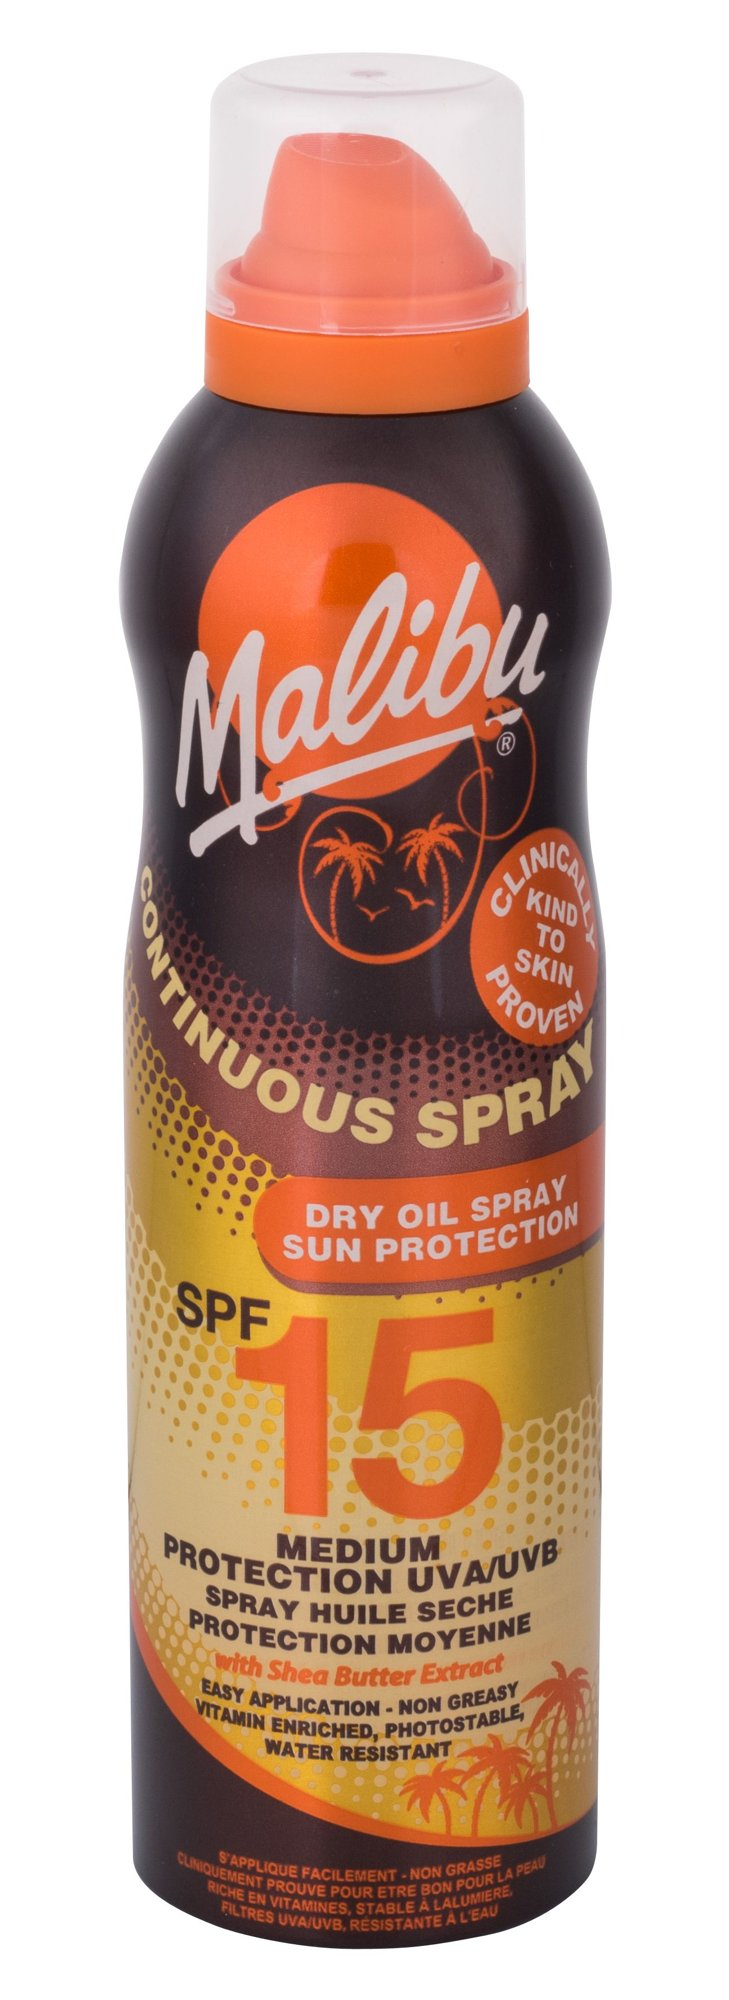 Malibu Continuous Spray Dry Oil Spray SPF15